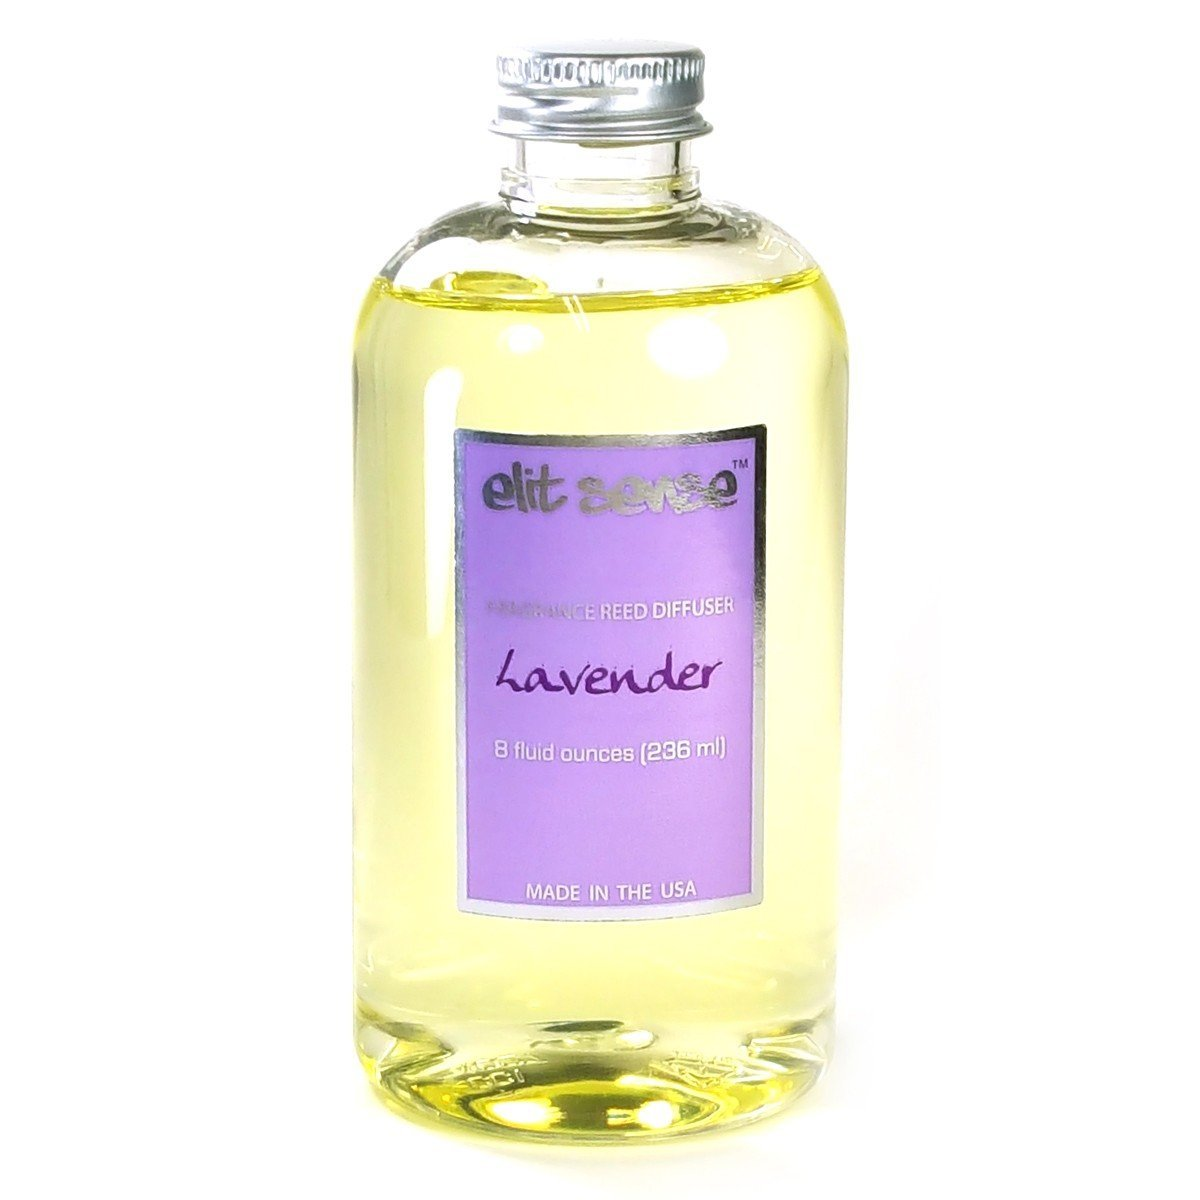 8 oz Fragrance Reed Diffuser Refill Oil - Lavender